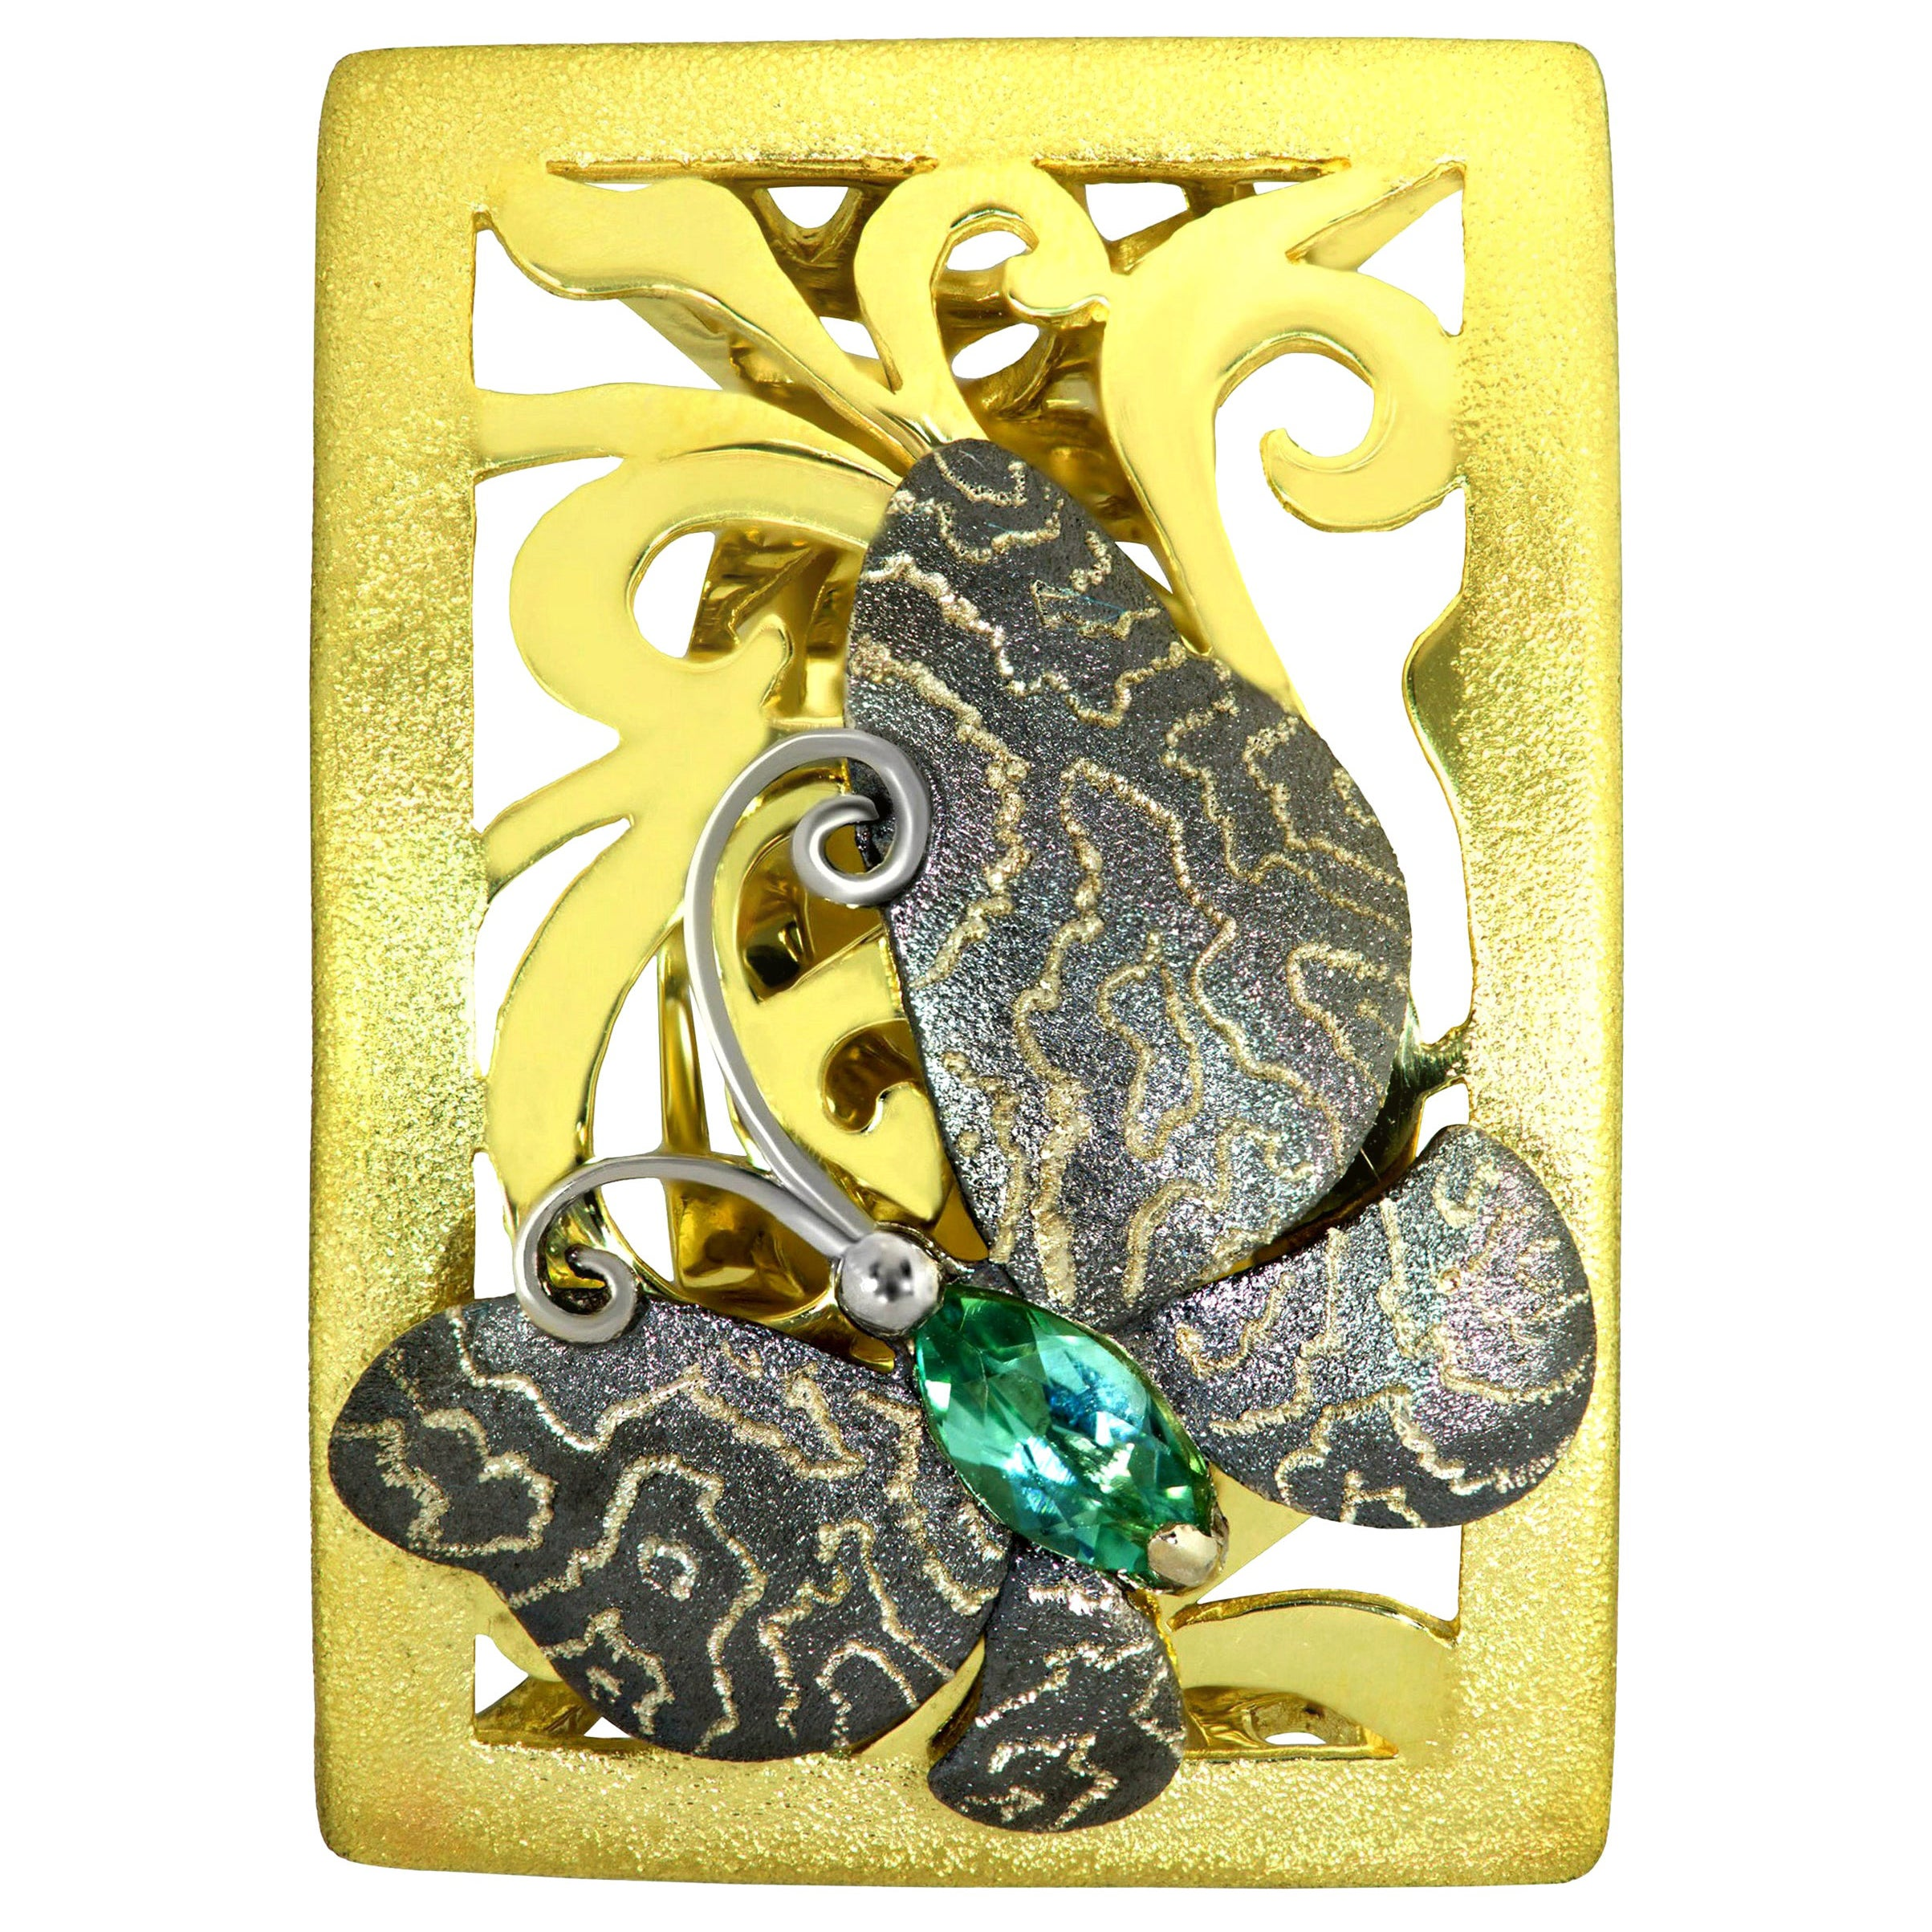 Alex Soldier Tourmaline Gold Hand-Textured Butterfly Ring One of a Kind